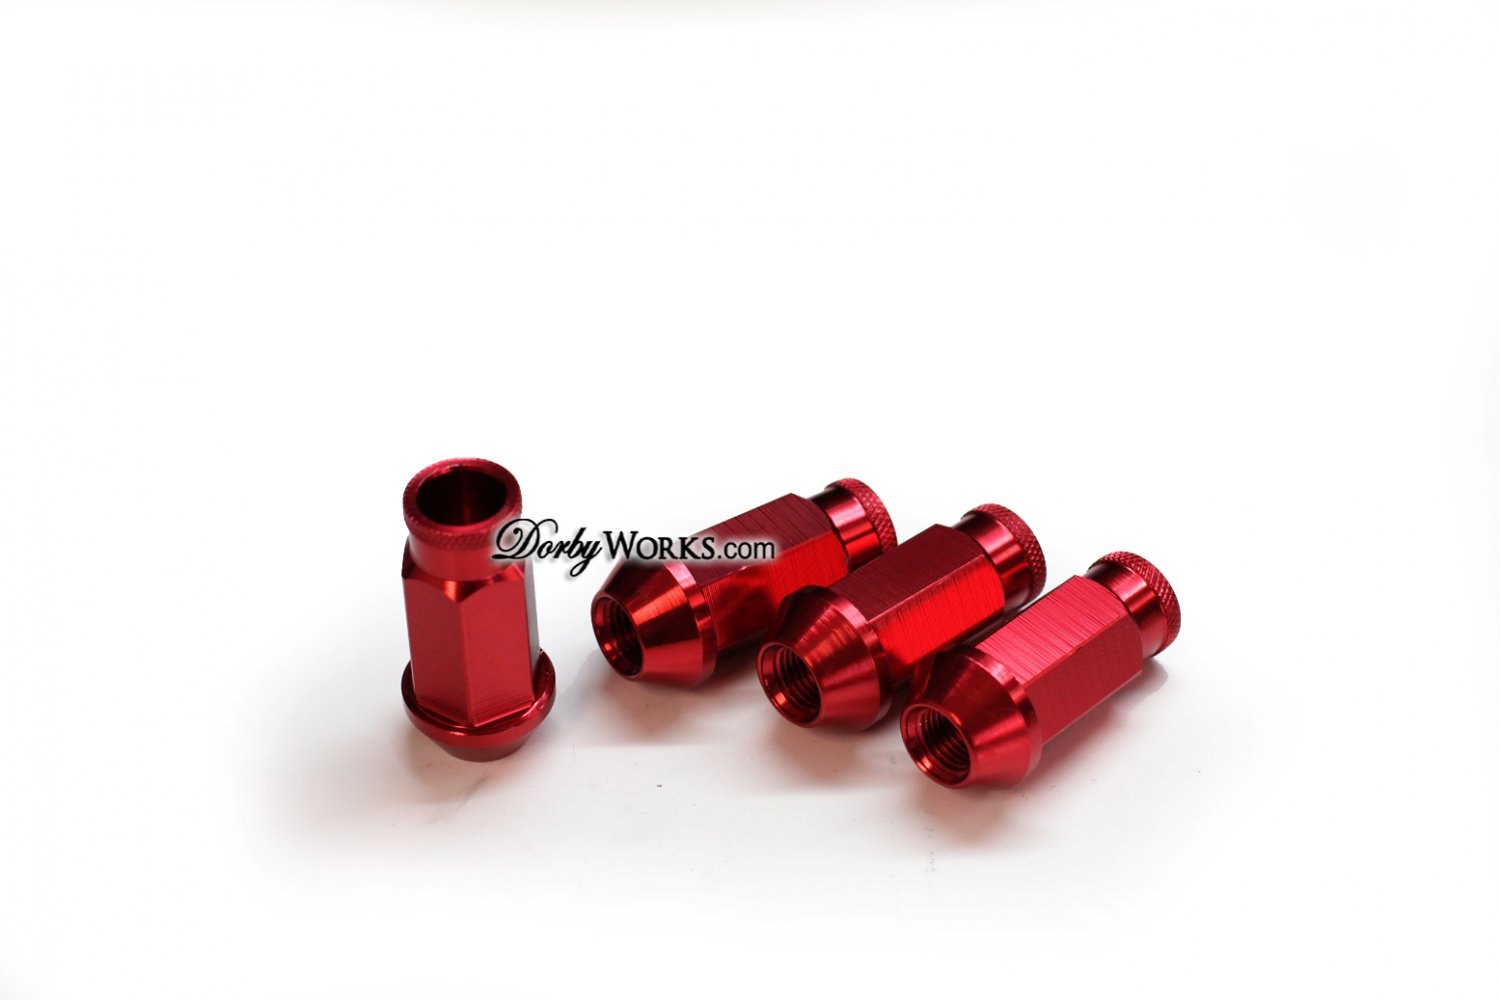 RED Lug nuts extended Forged Aluminum / Anodized